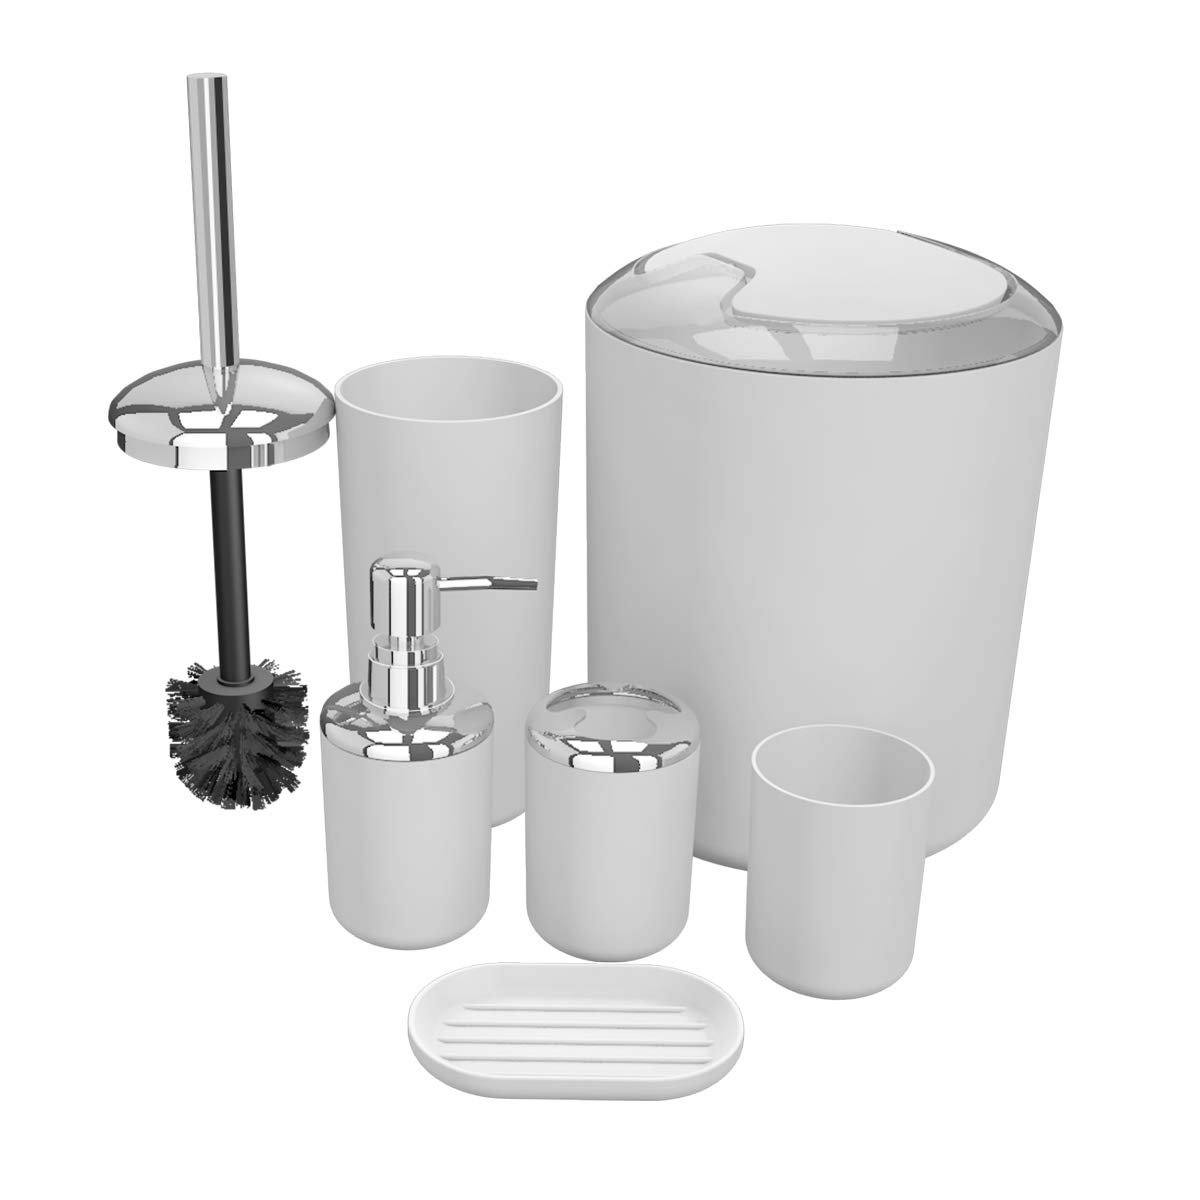 TEKITSFUN White Bathroom Accessories Set, 6 Pieces Plastic Gift Bath Accessory Set Luxury Ensemble Includes Toothbrush Holder,Toothbrush Cup,Soap Dispenser,Soap Dish,Toilet Brush Holder,Trash Can